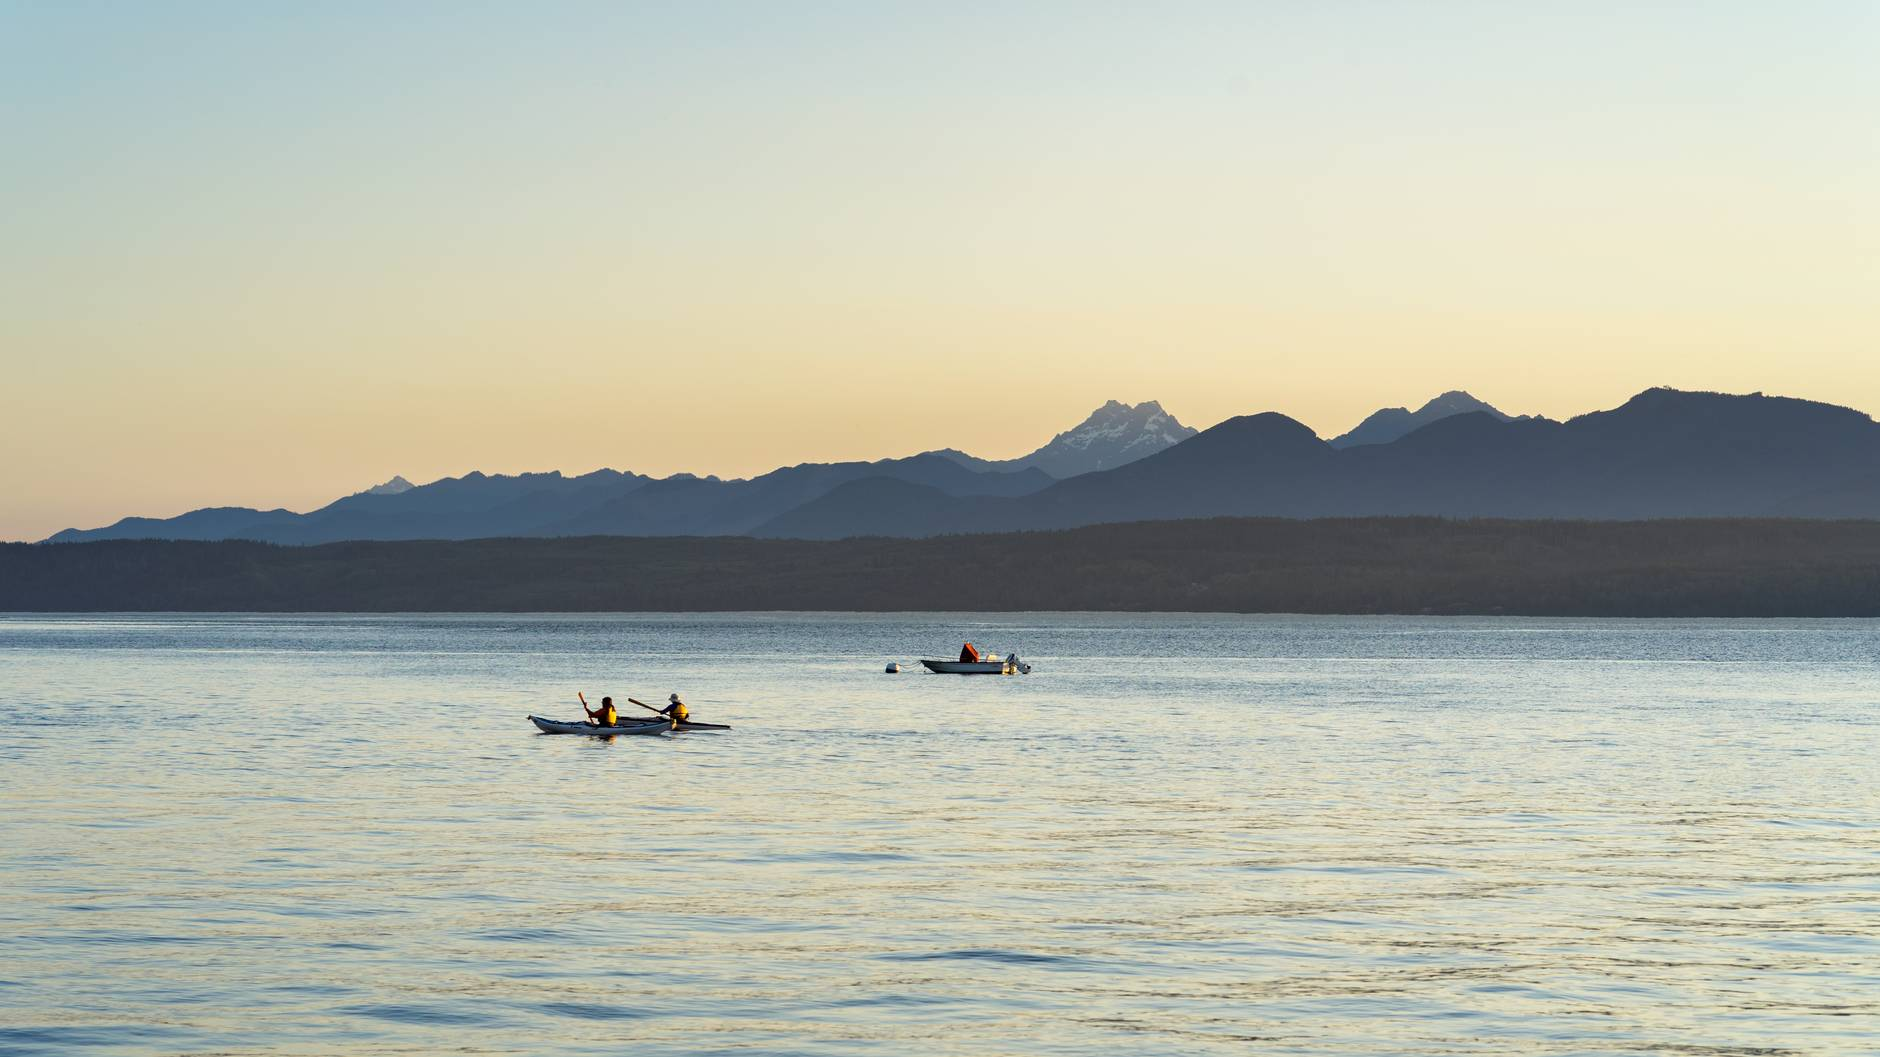 two men in kayaks out at sea